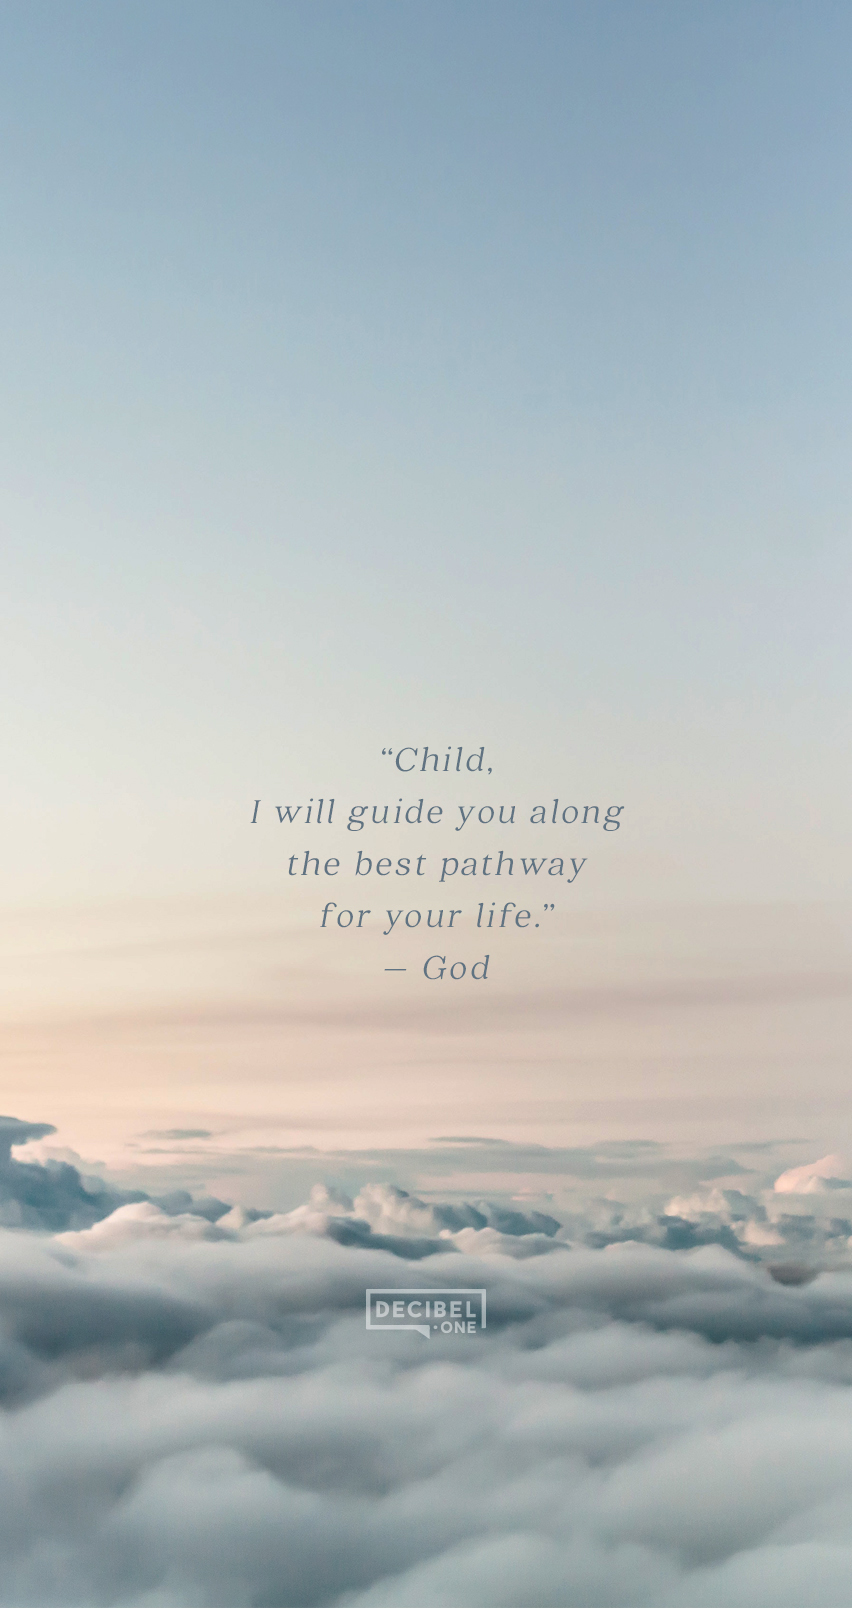 """Child, I will guide you along the best pathway for your life."" – God"